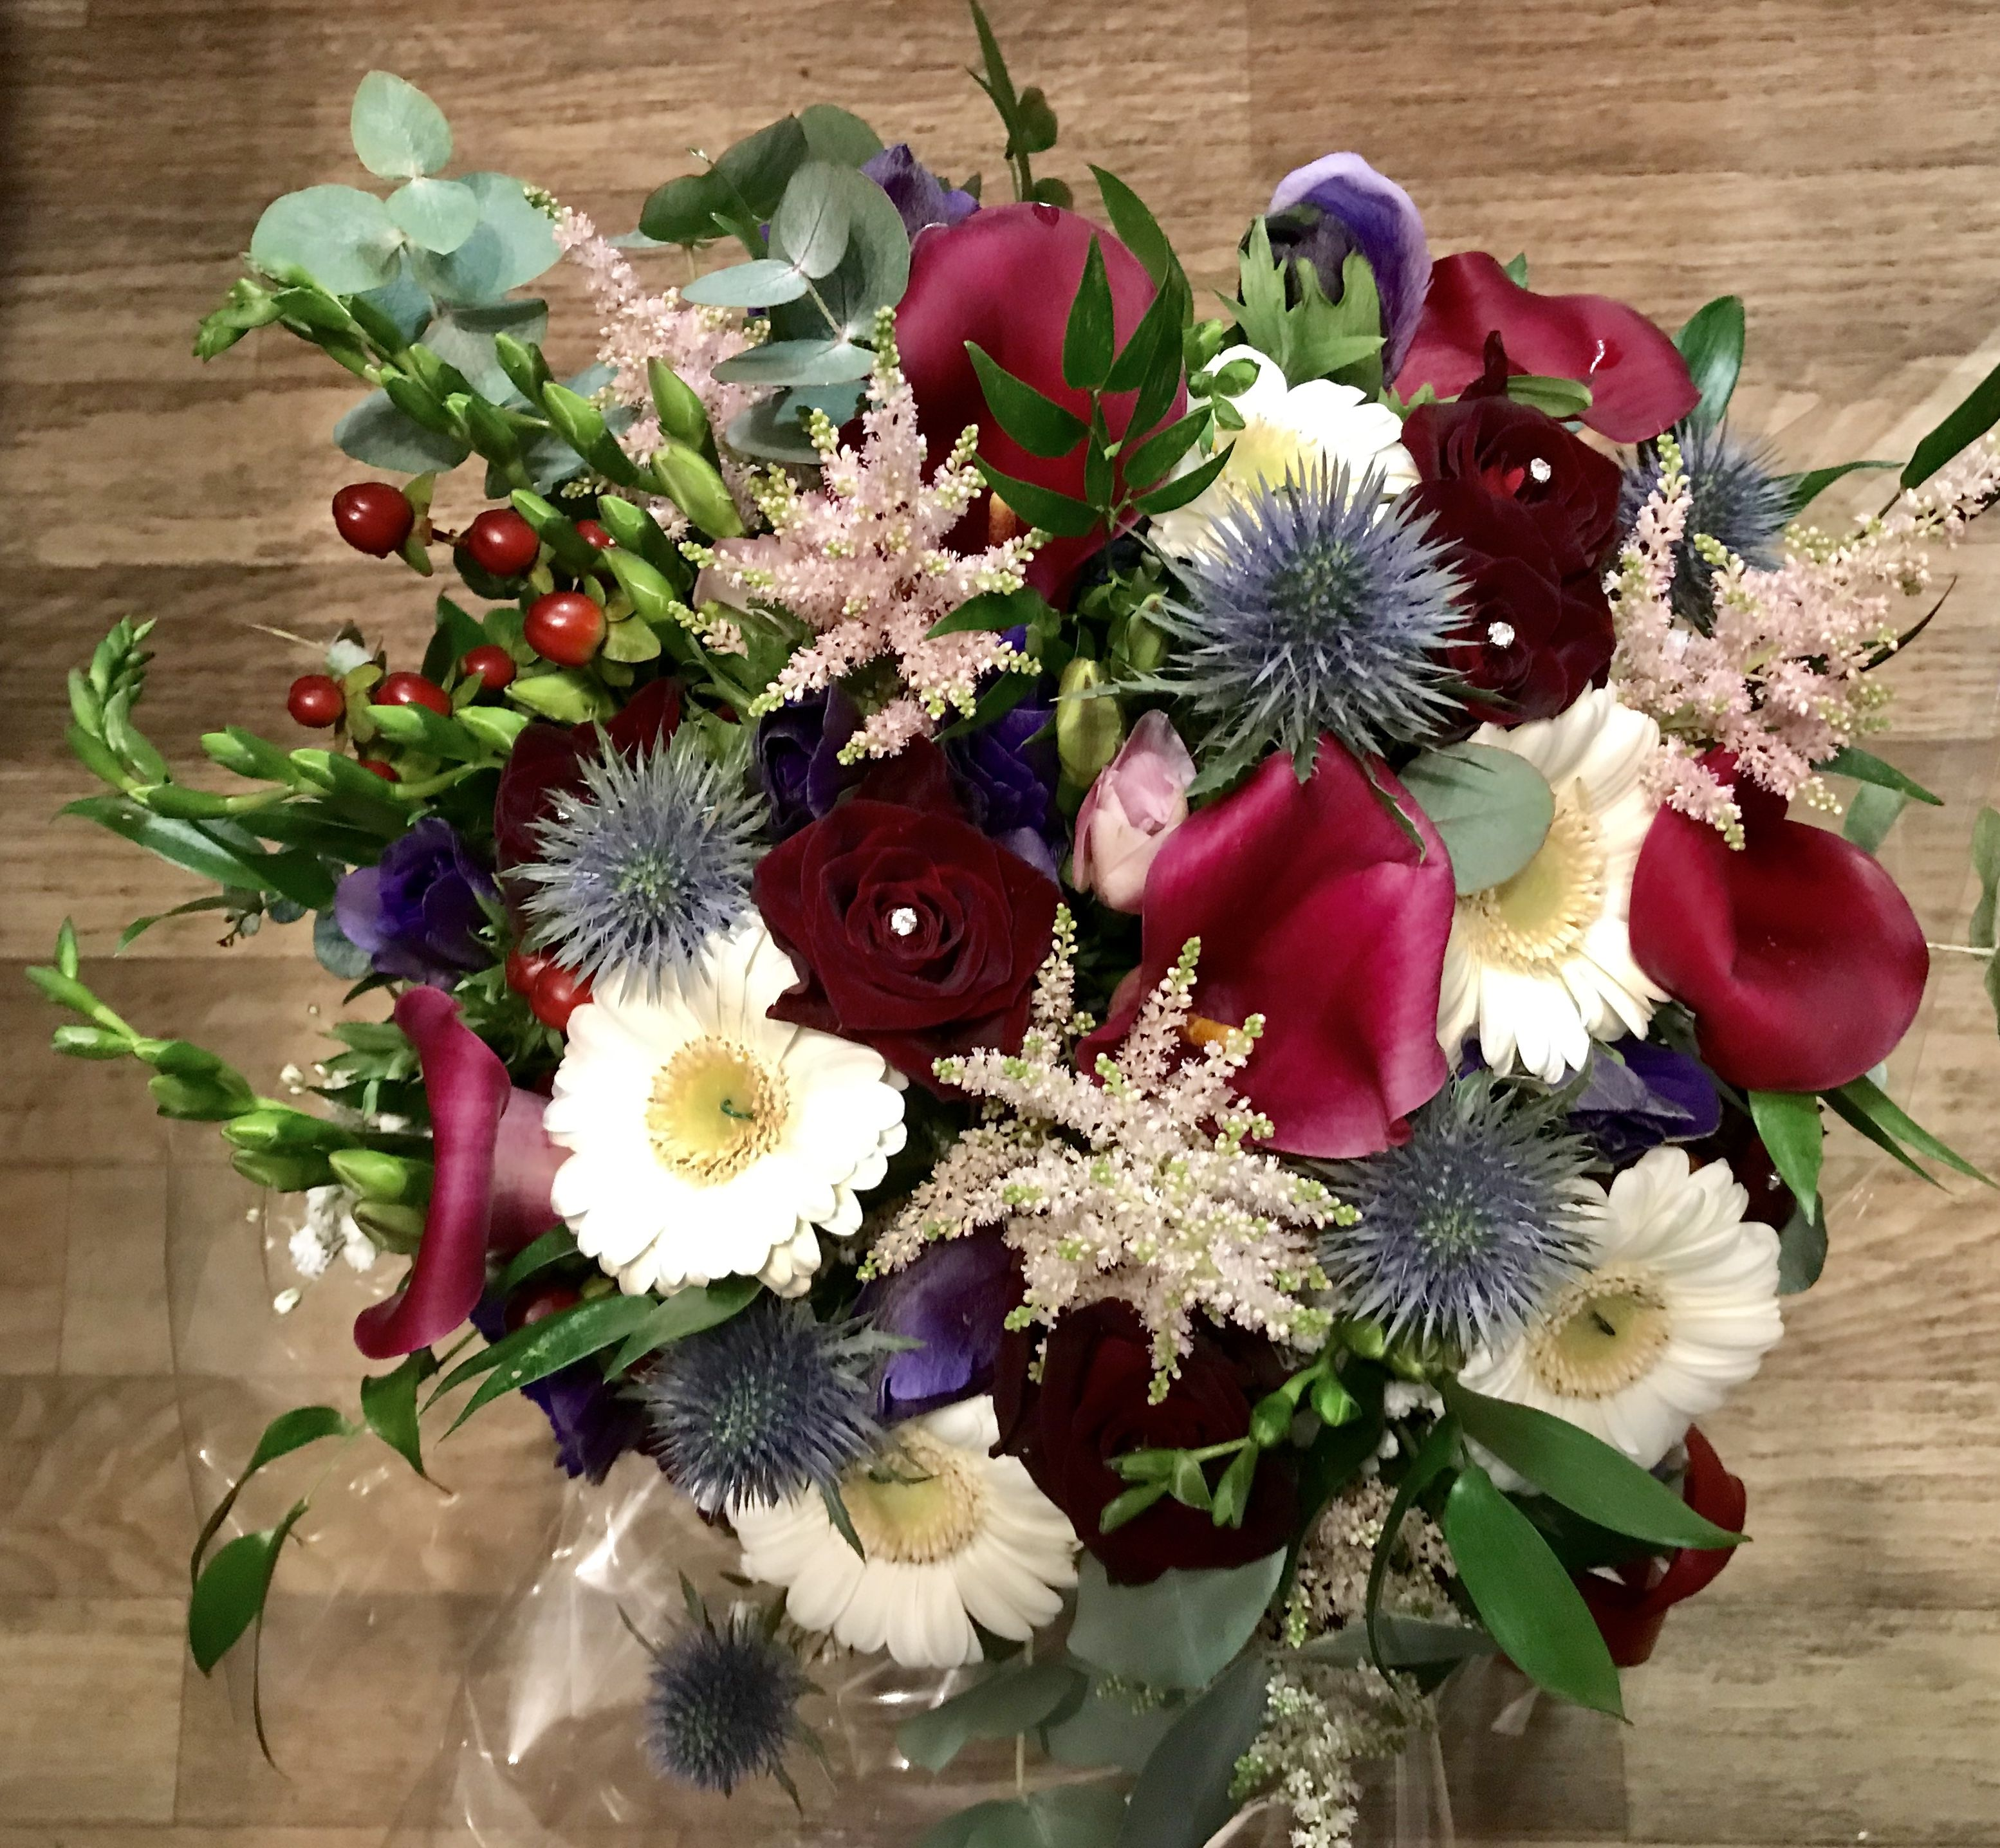 Love the combination and varieties in our bridal bouquet